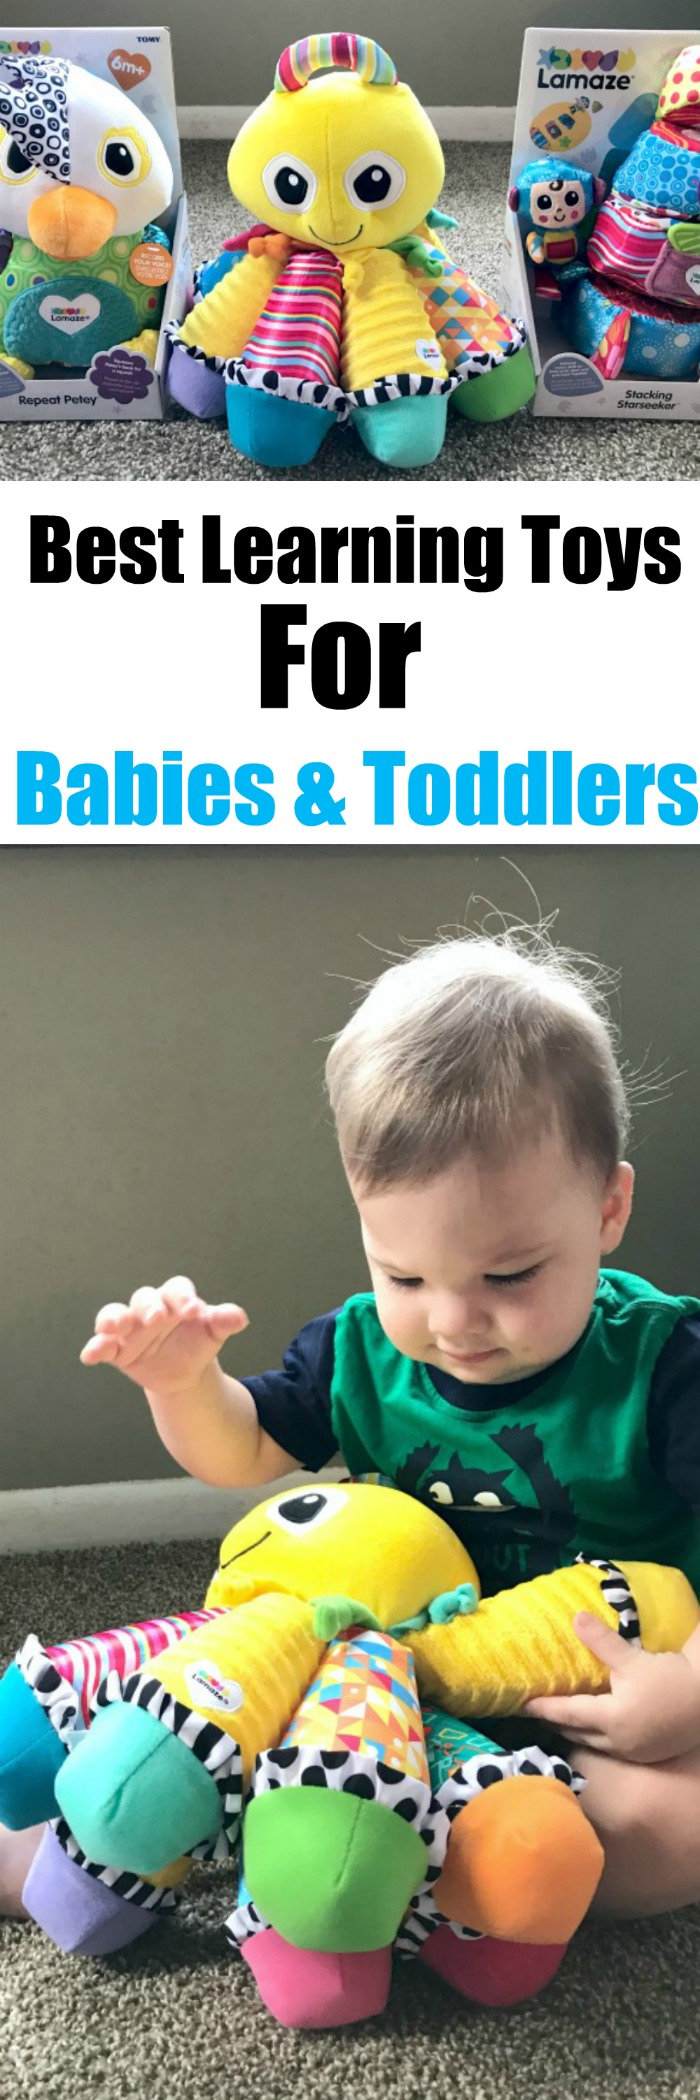 Learning Toys for Babies and Toddlers